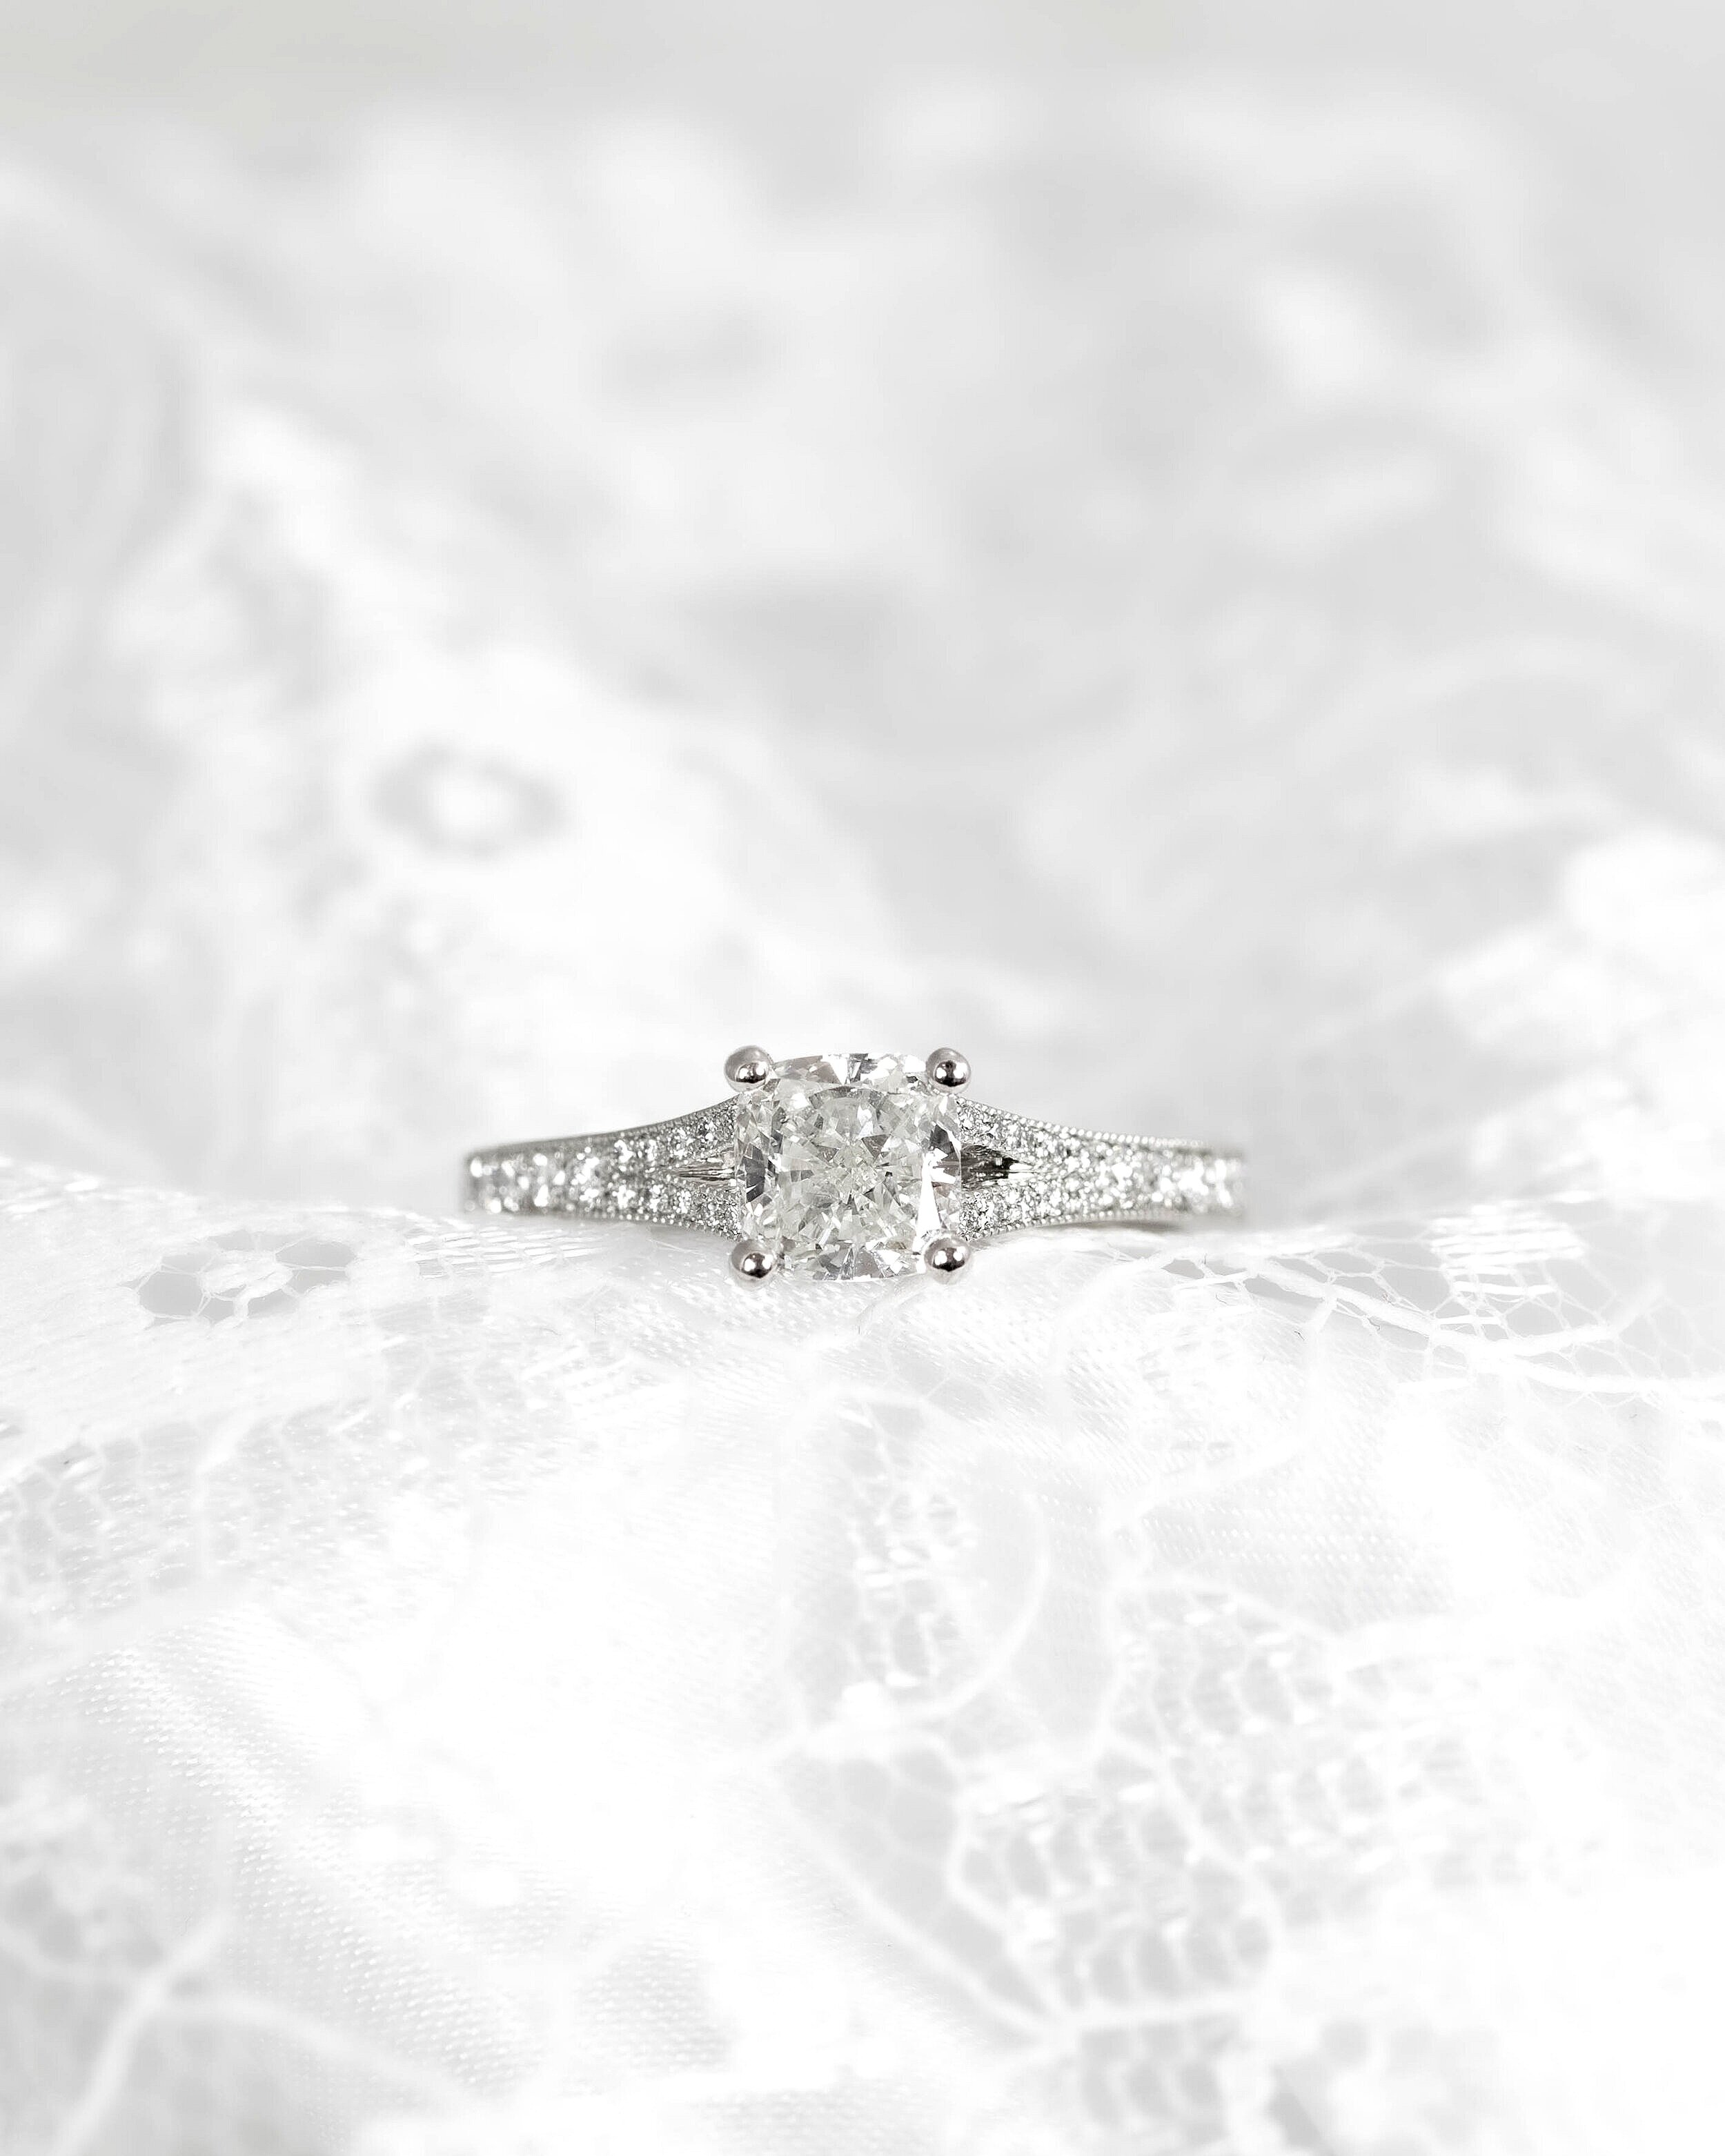 Platinum mounted 1.02ct cushion cut diamond solitaire with grain set split shoulders. Made in Chichester, England.